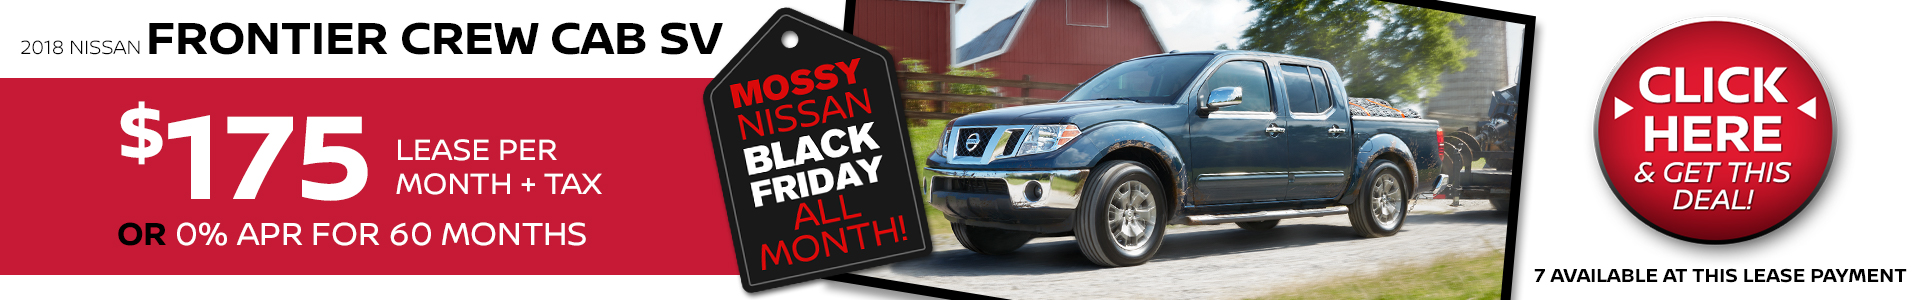 Mossy Nissan - Nissan Frontier $175 Lease